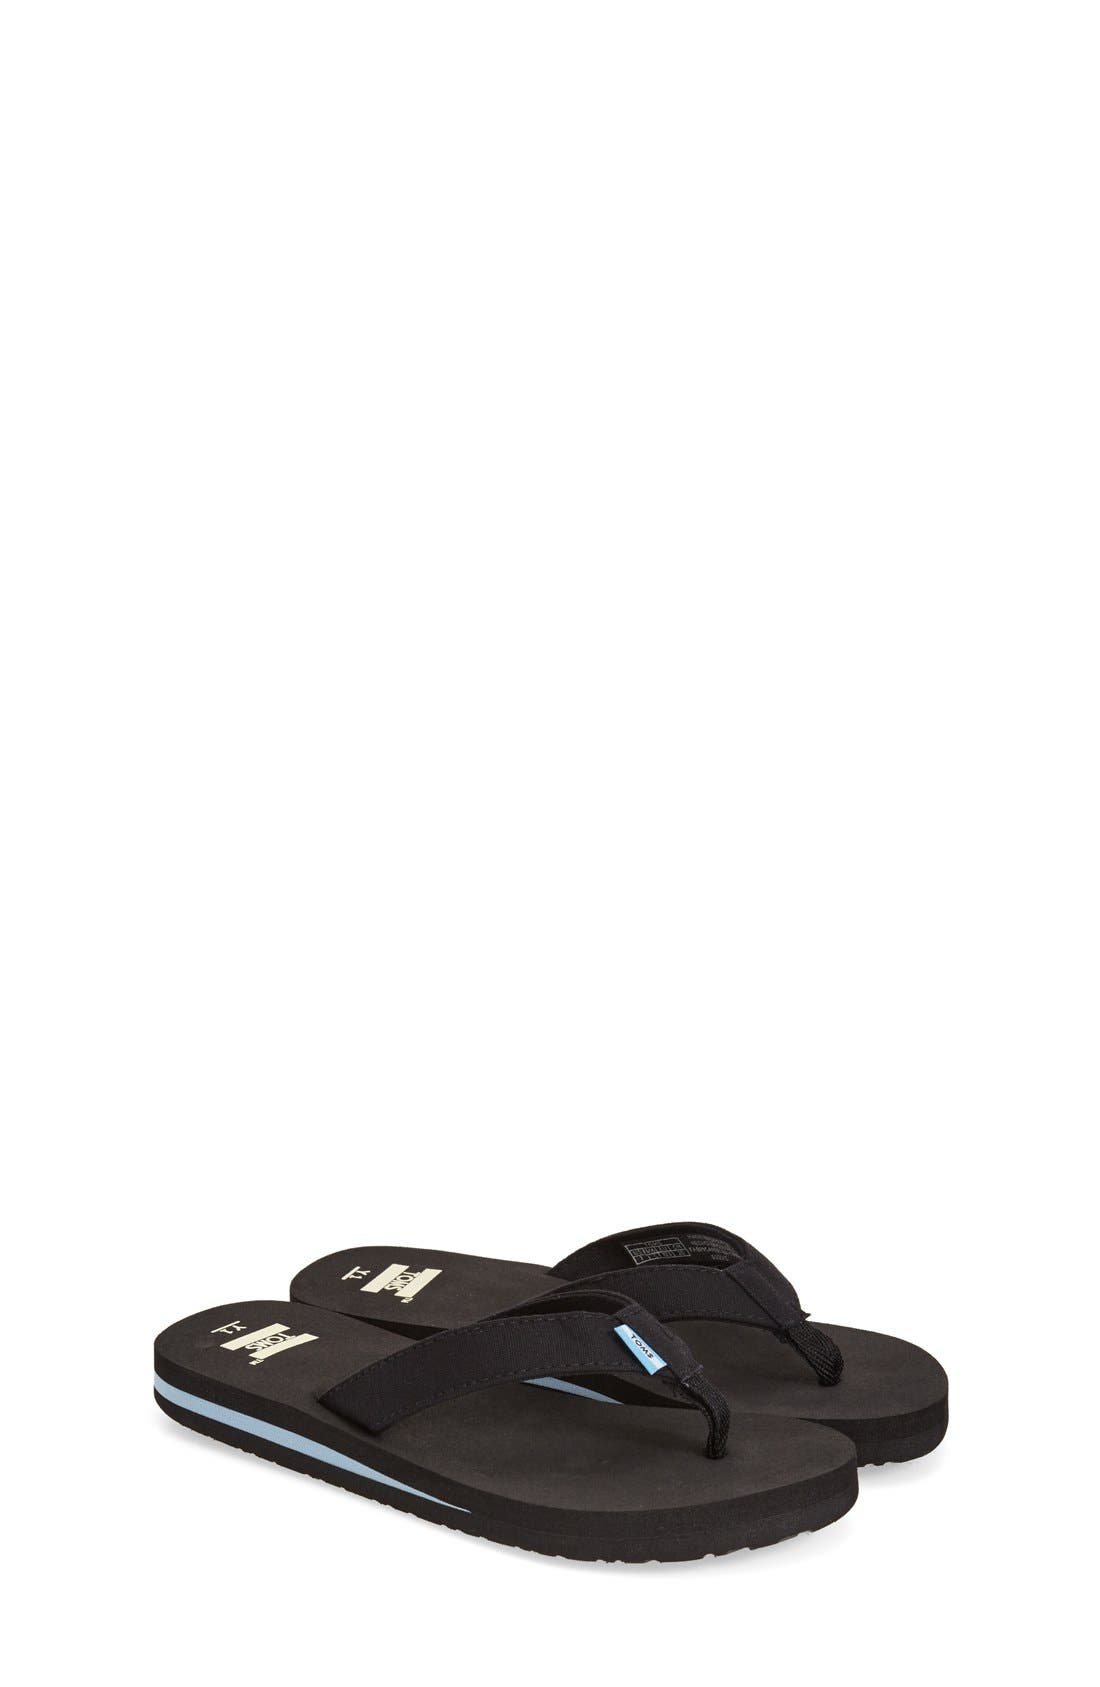 'Verano' Flip Flop,                         Main,                         color, BLACK